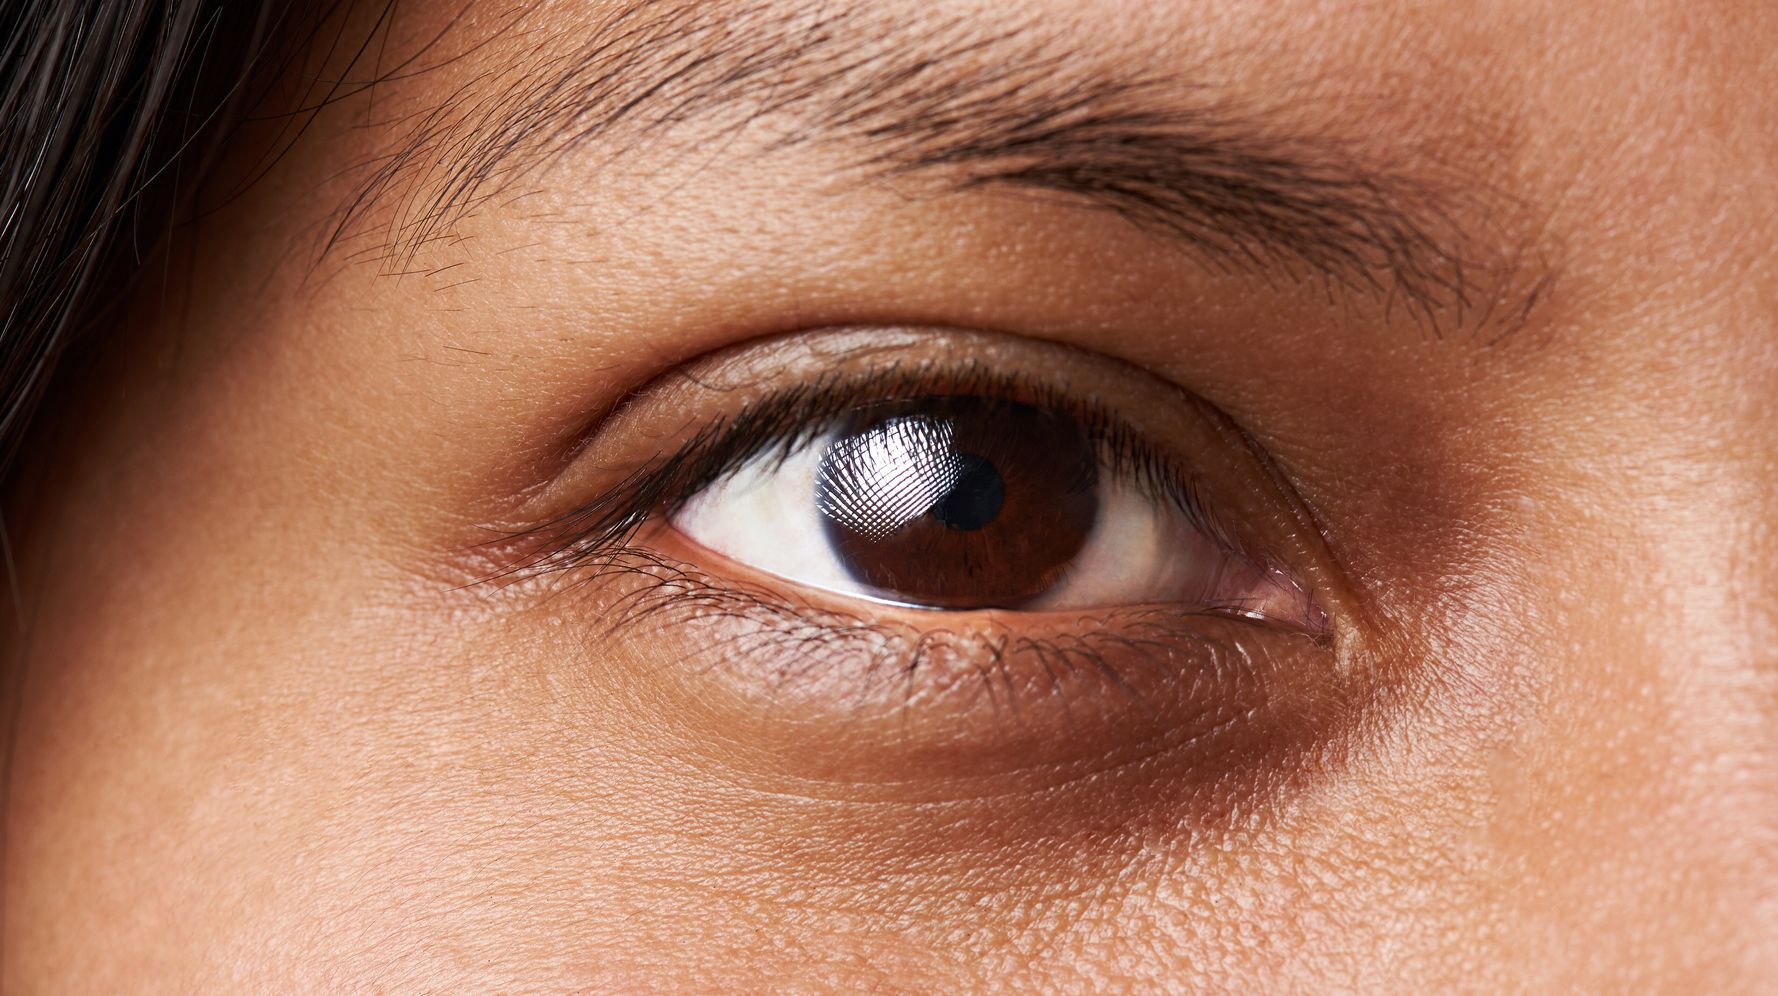 What Causes Dark Circles Under Your Eyes And How Do You Get Rid Of Them?